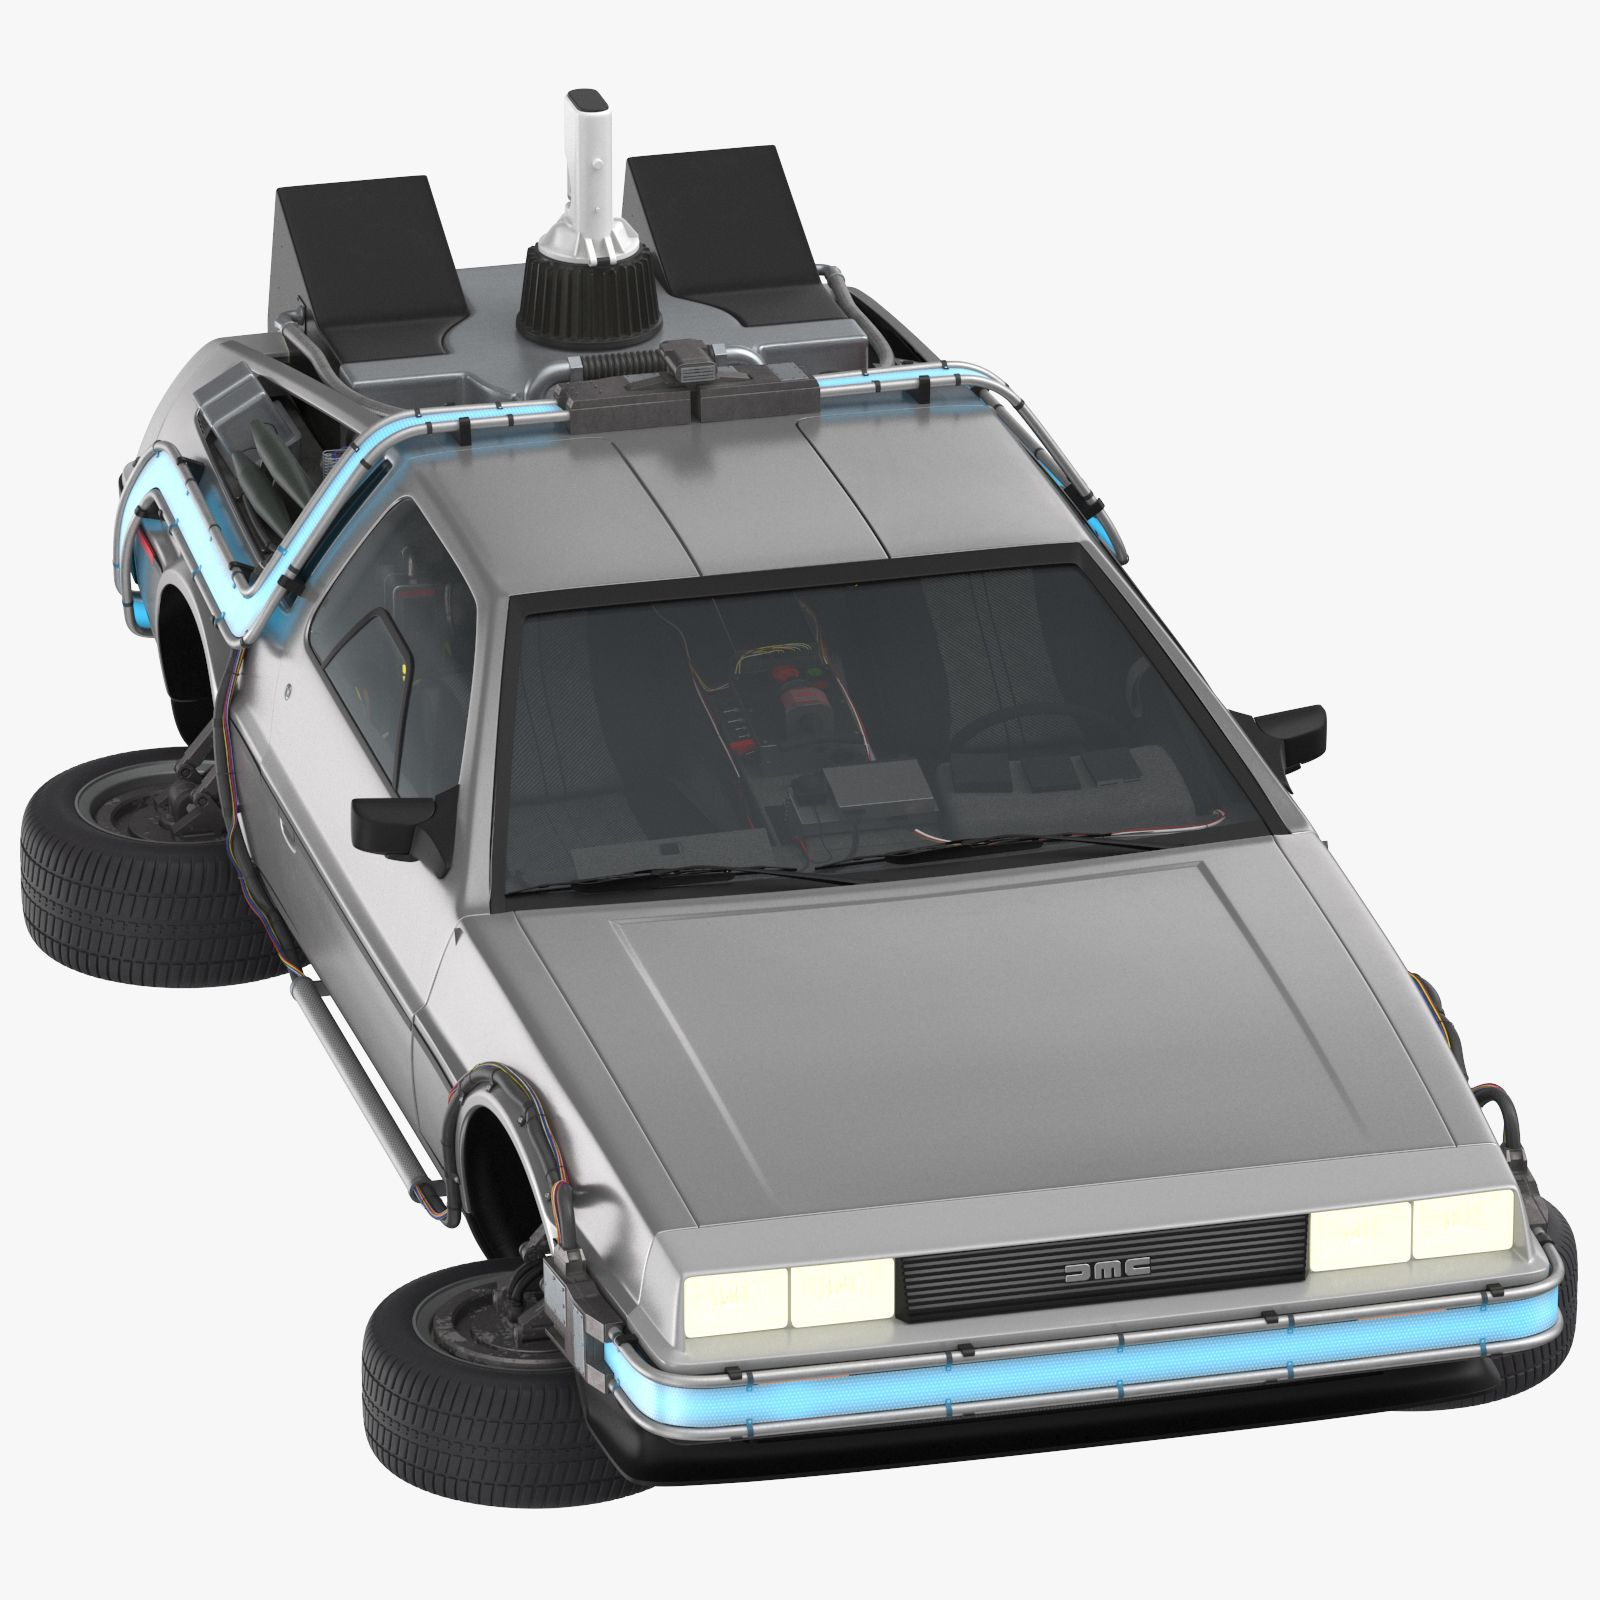 Delorean Back To The Future Driving And Flying 3d Model